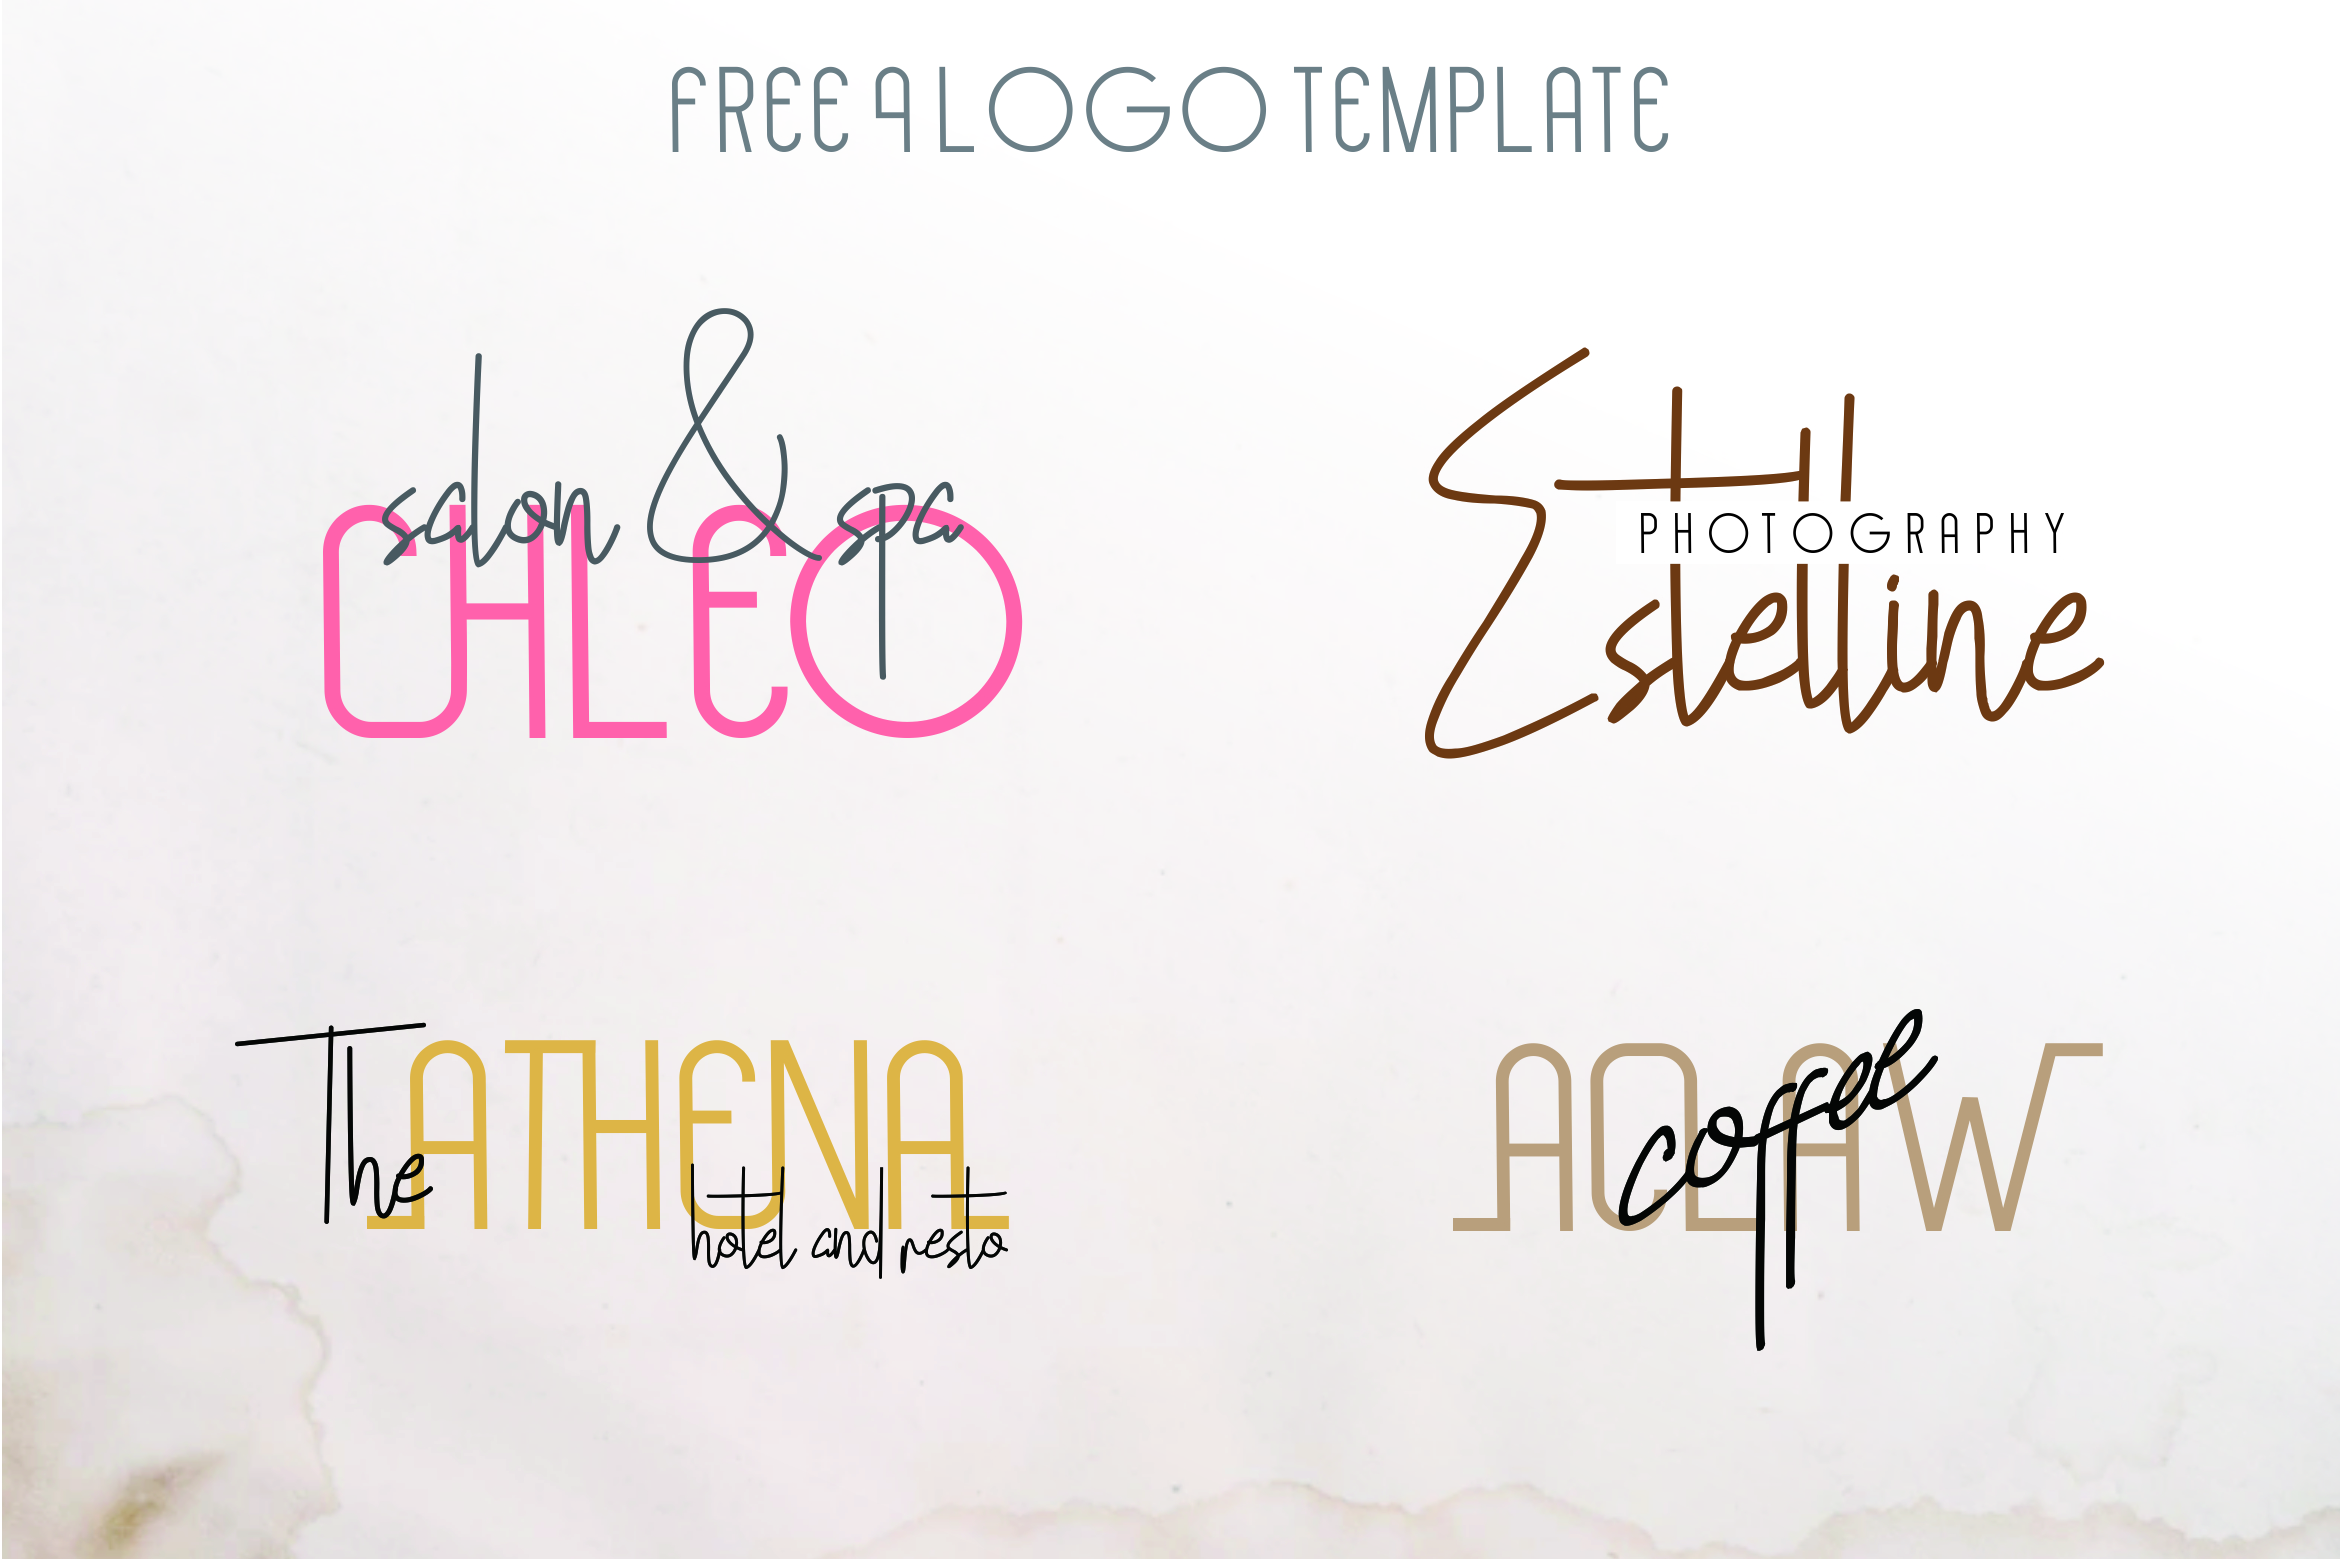 Hollen Amare Font Duo - free logo template example image 2